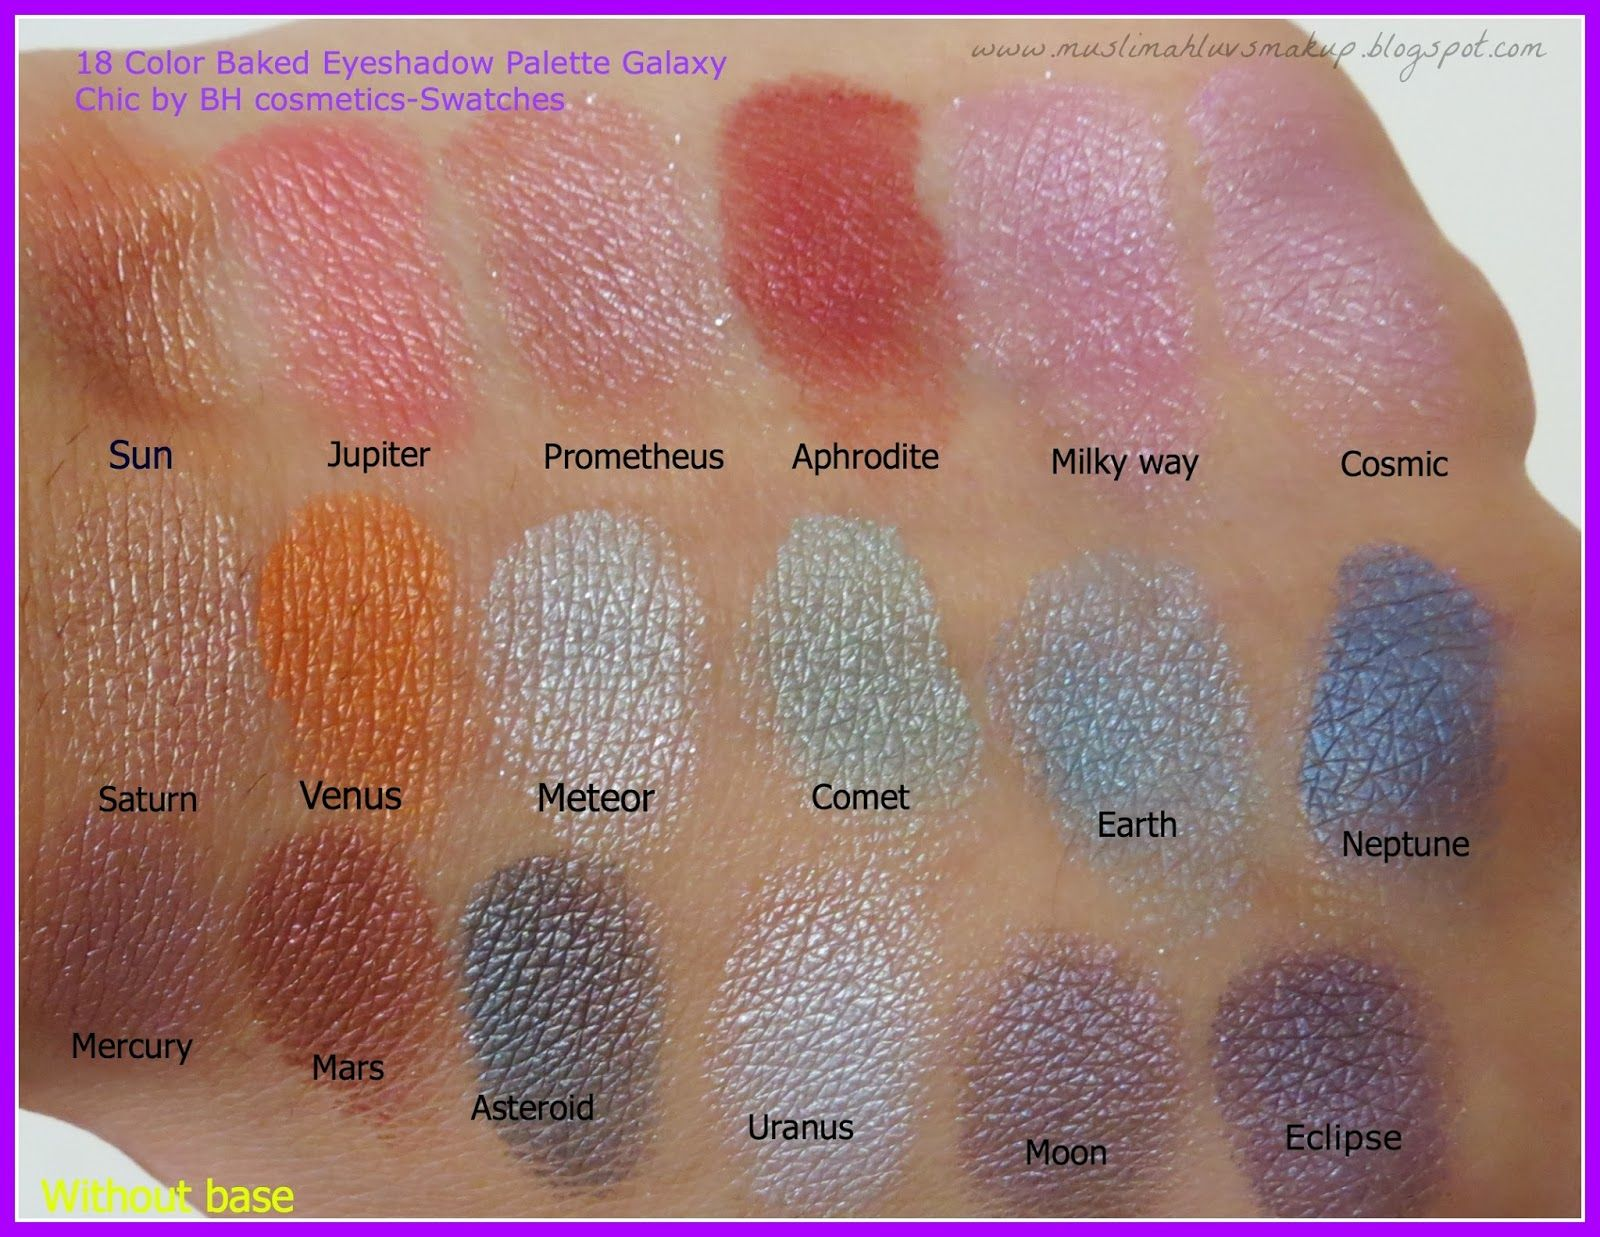 Solar Flare - 18 Color Baked Eyeshadow Palette by BH Cosmetics #11